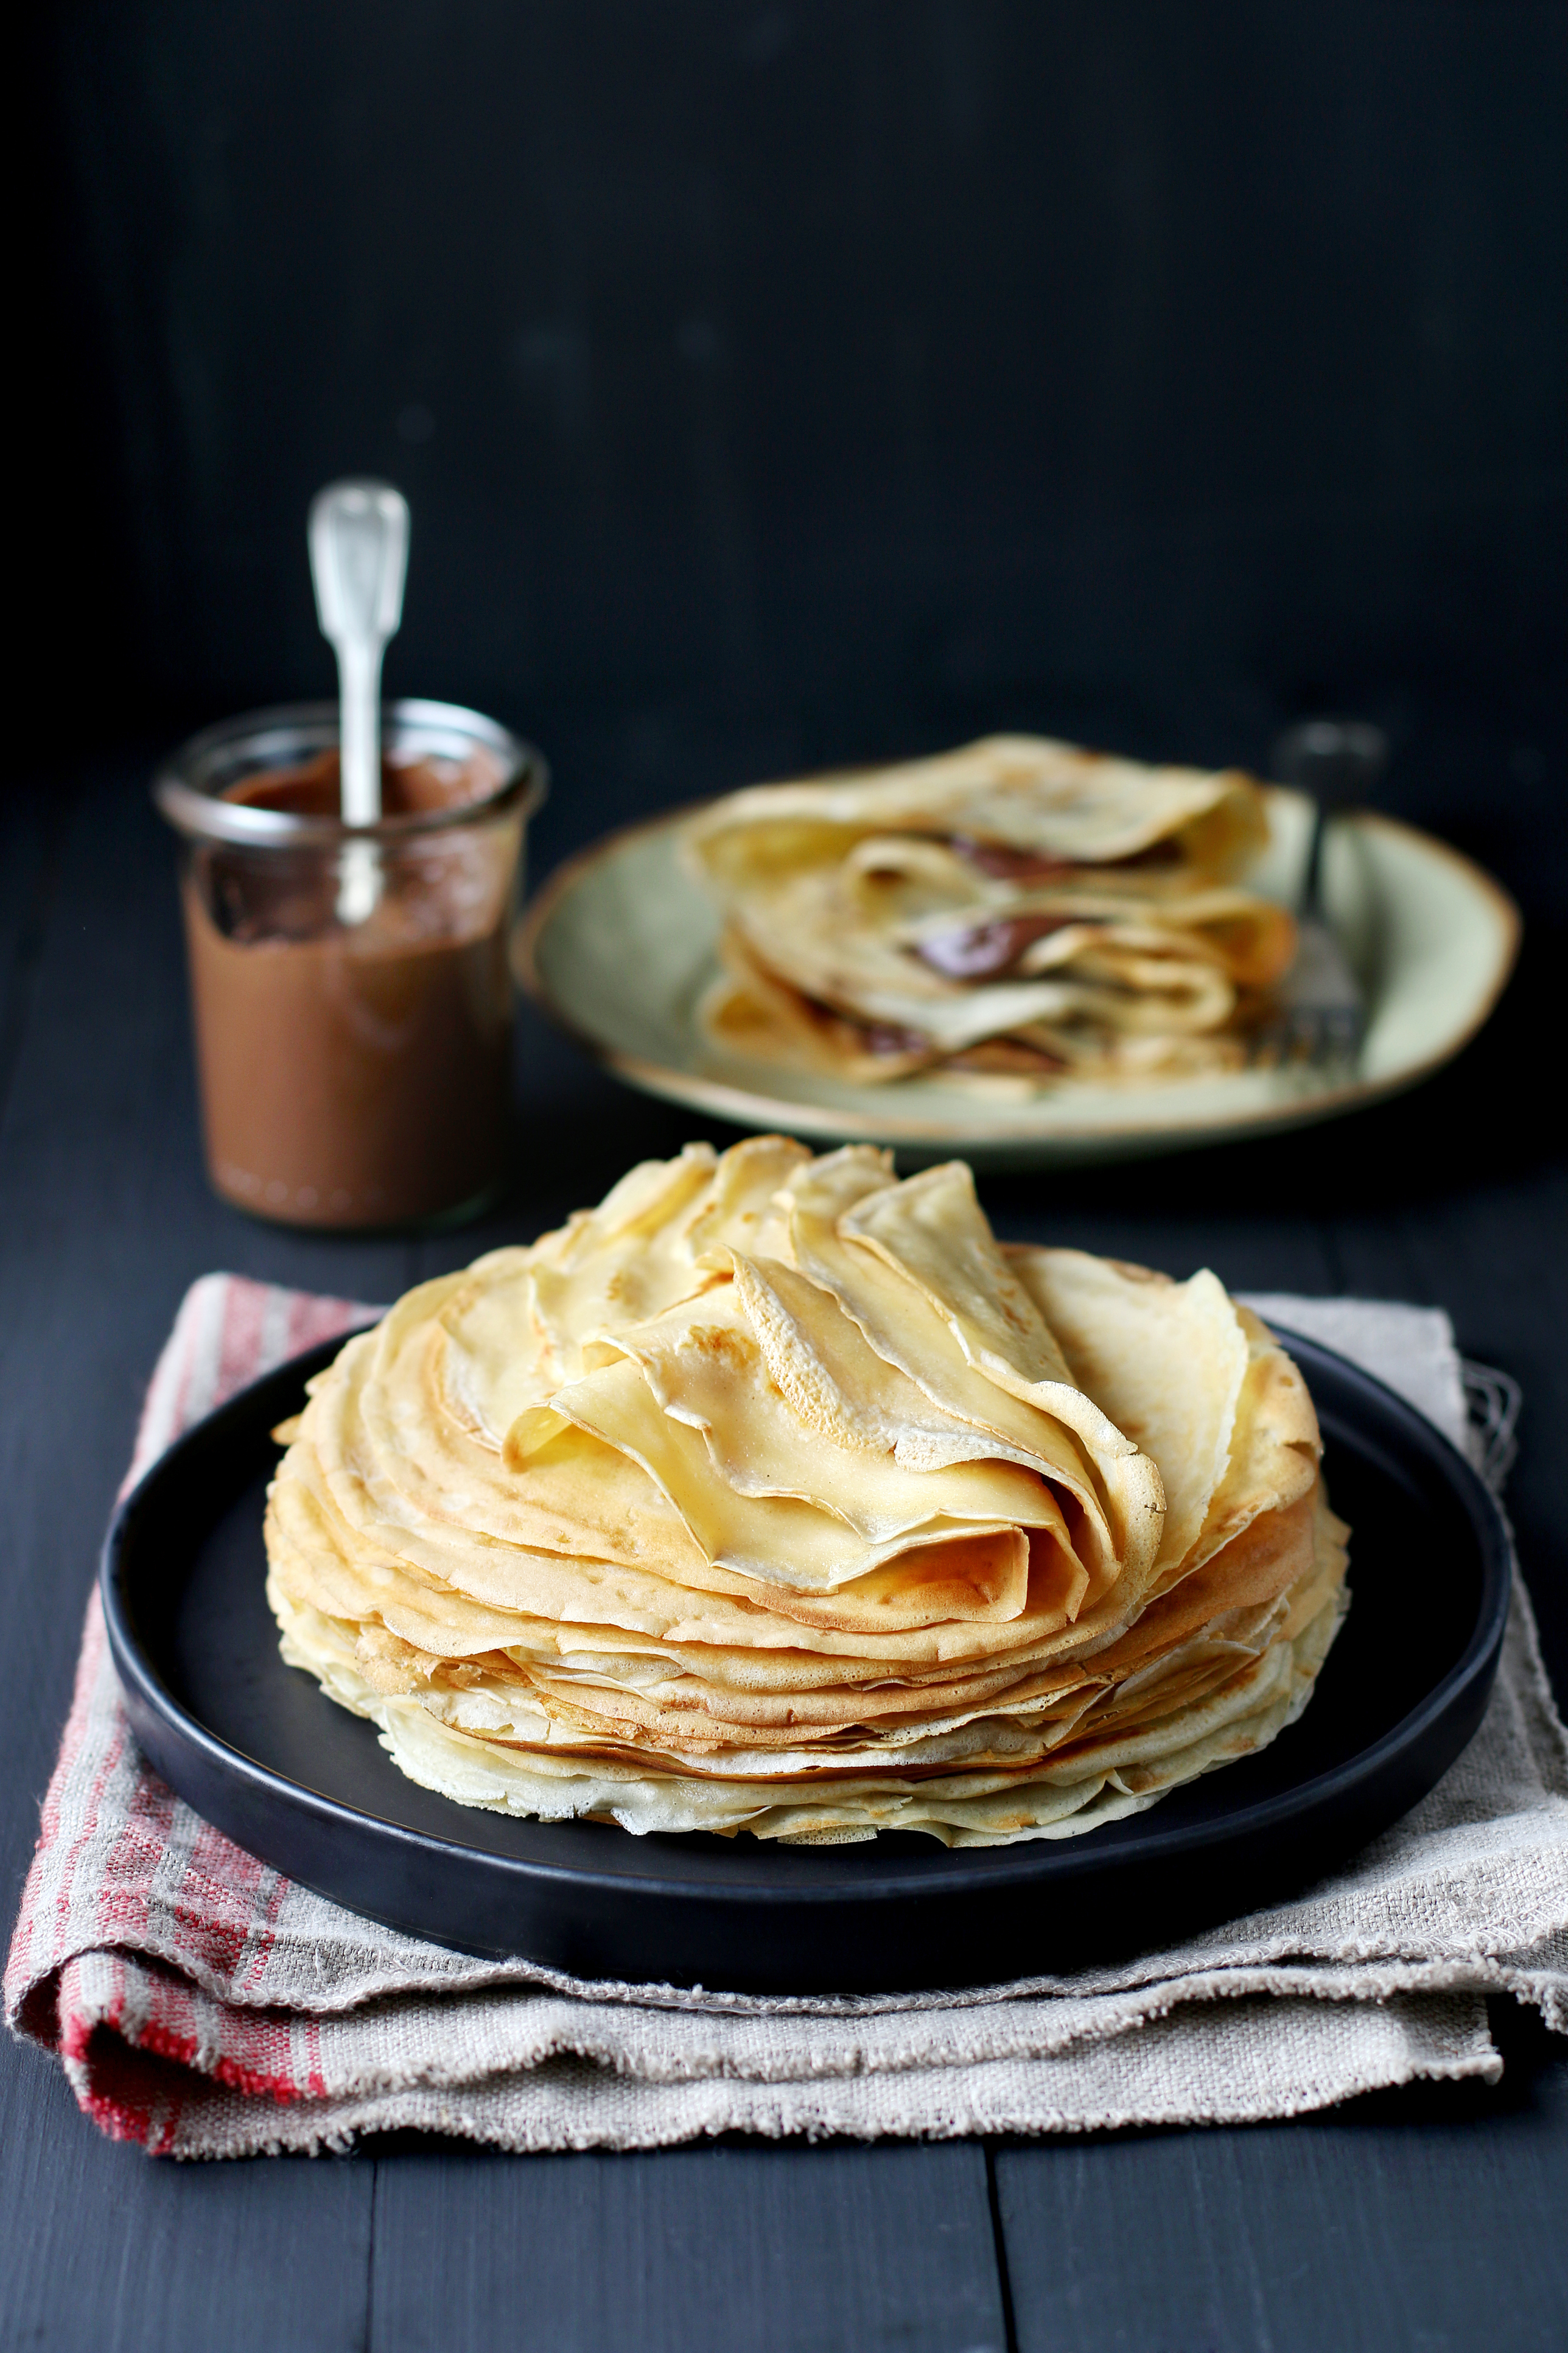 Stack of crepes on a plate